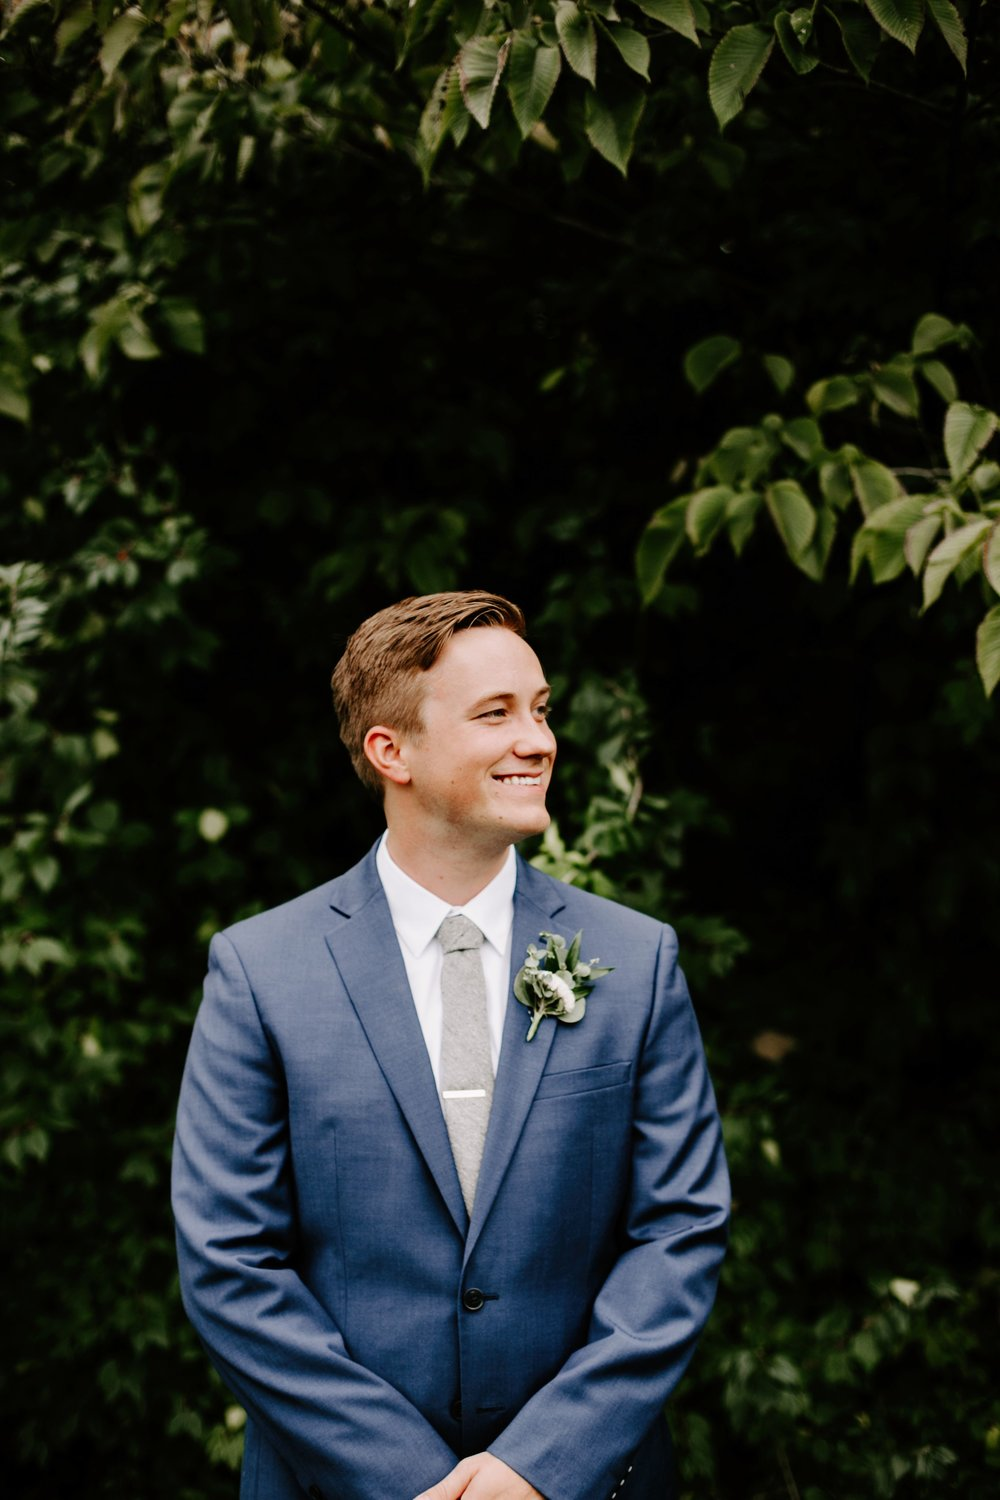 Katy and Michael Wedding at The Ritz Charles Garden Pavillion in Indianapolis Indiana by Emily Elyse Wehner Photography LLC-195.jpg